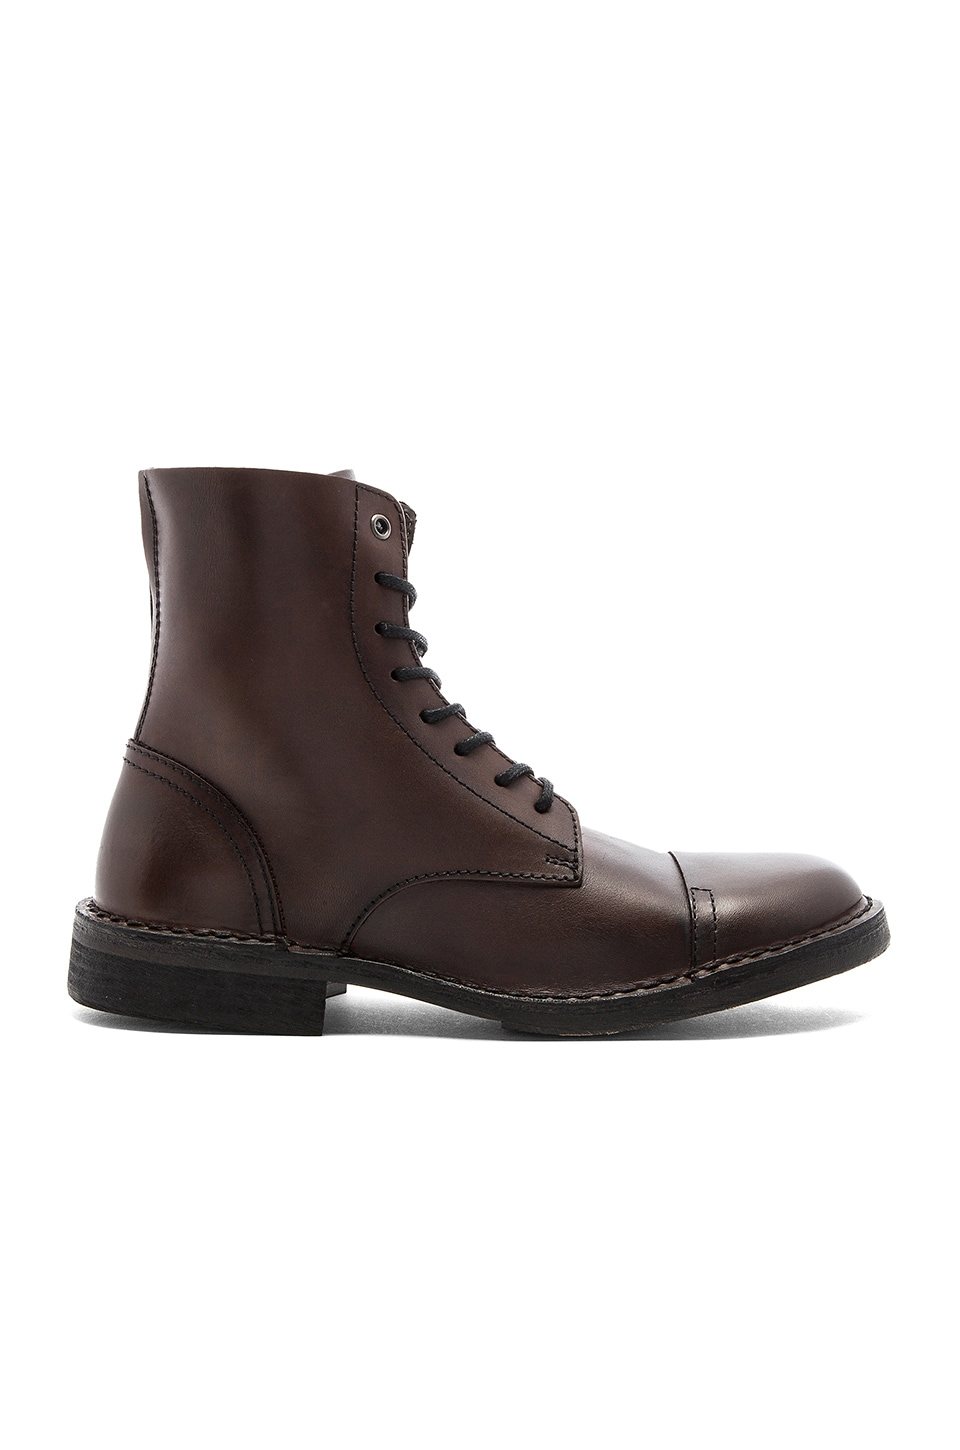 Photo of Dopper D Pit Boot by Diesel men clothes